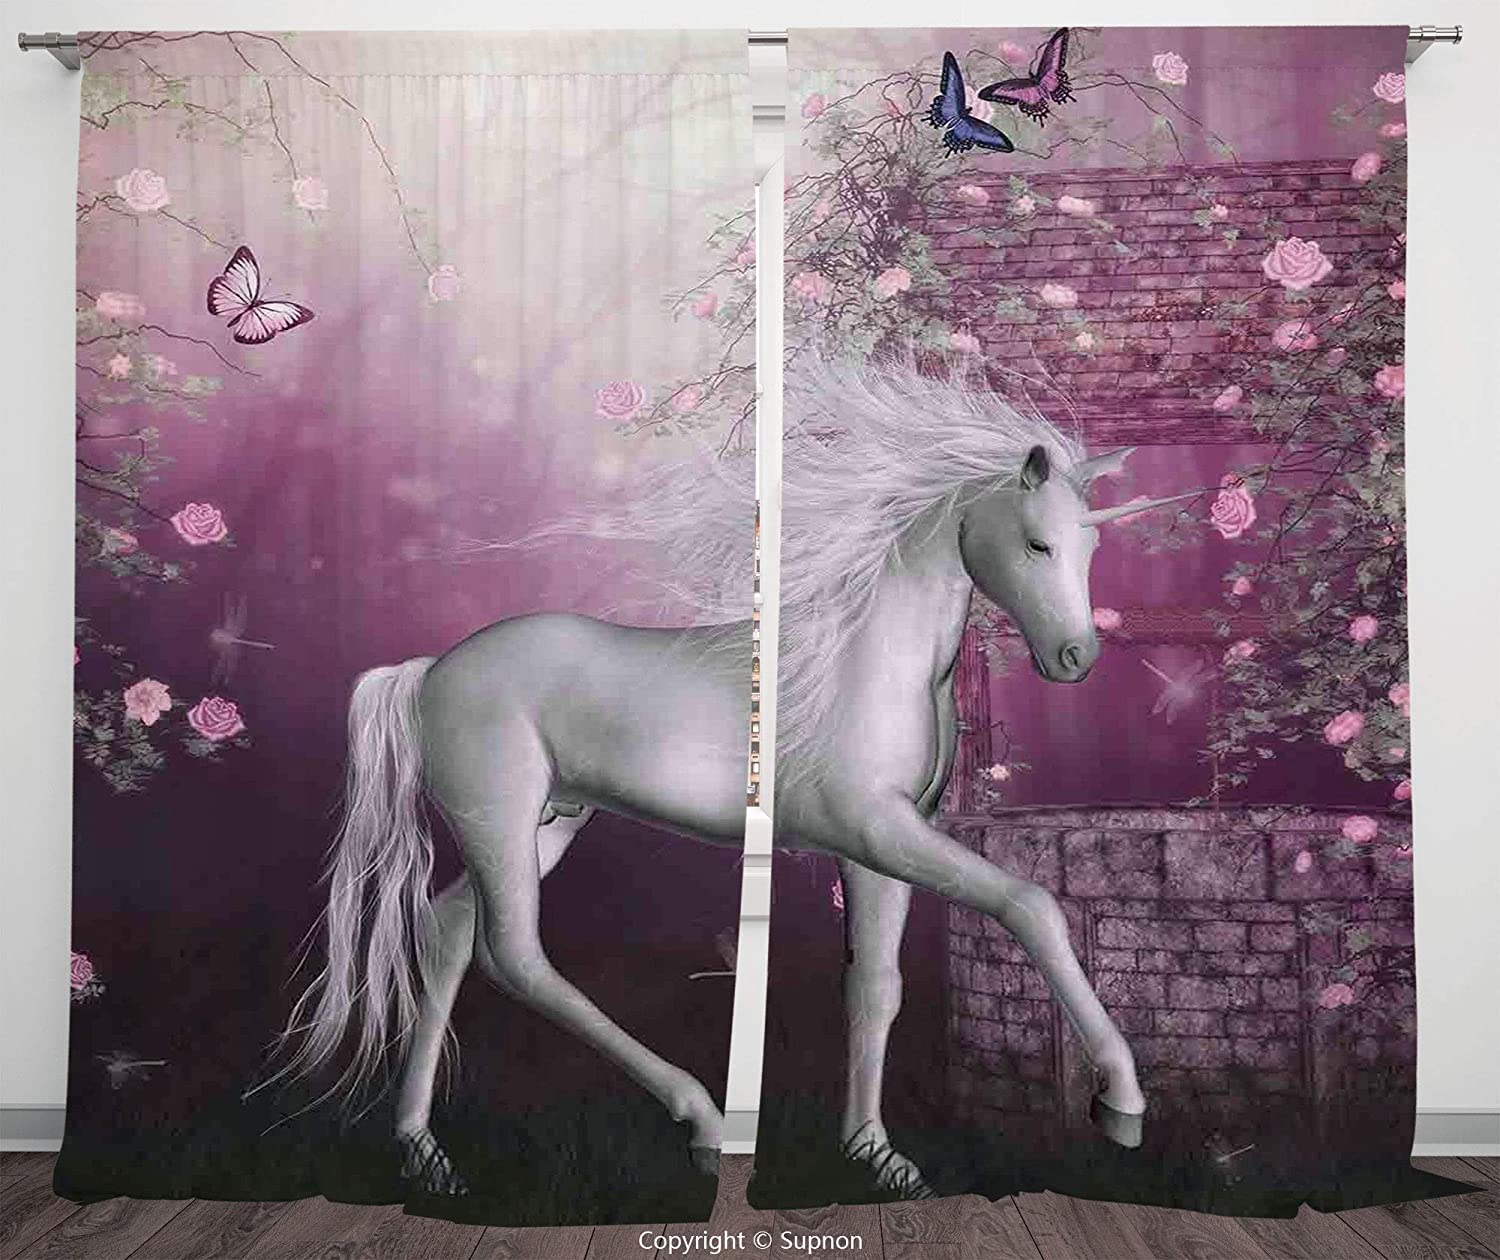 Rod Pocket Curtain Panel Polyester Translucent Curtains for Bedroom Living Room Dorm Kitchen Cafe/2 Curtain Panels/108 x 72 Inch/Fantasy Decor,Unicorn in Rose Garden Summer Flying Butterflies Romance